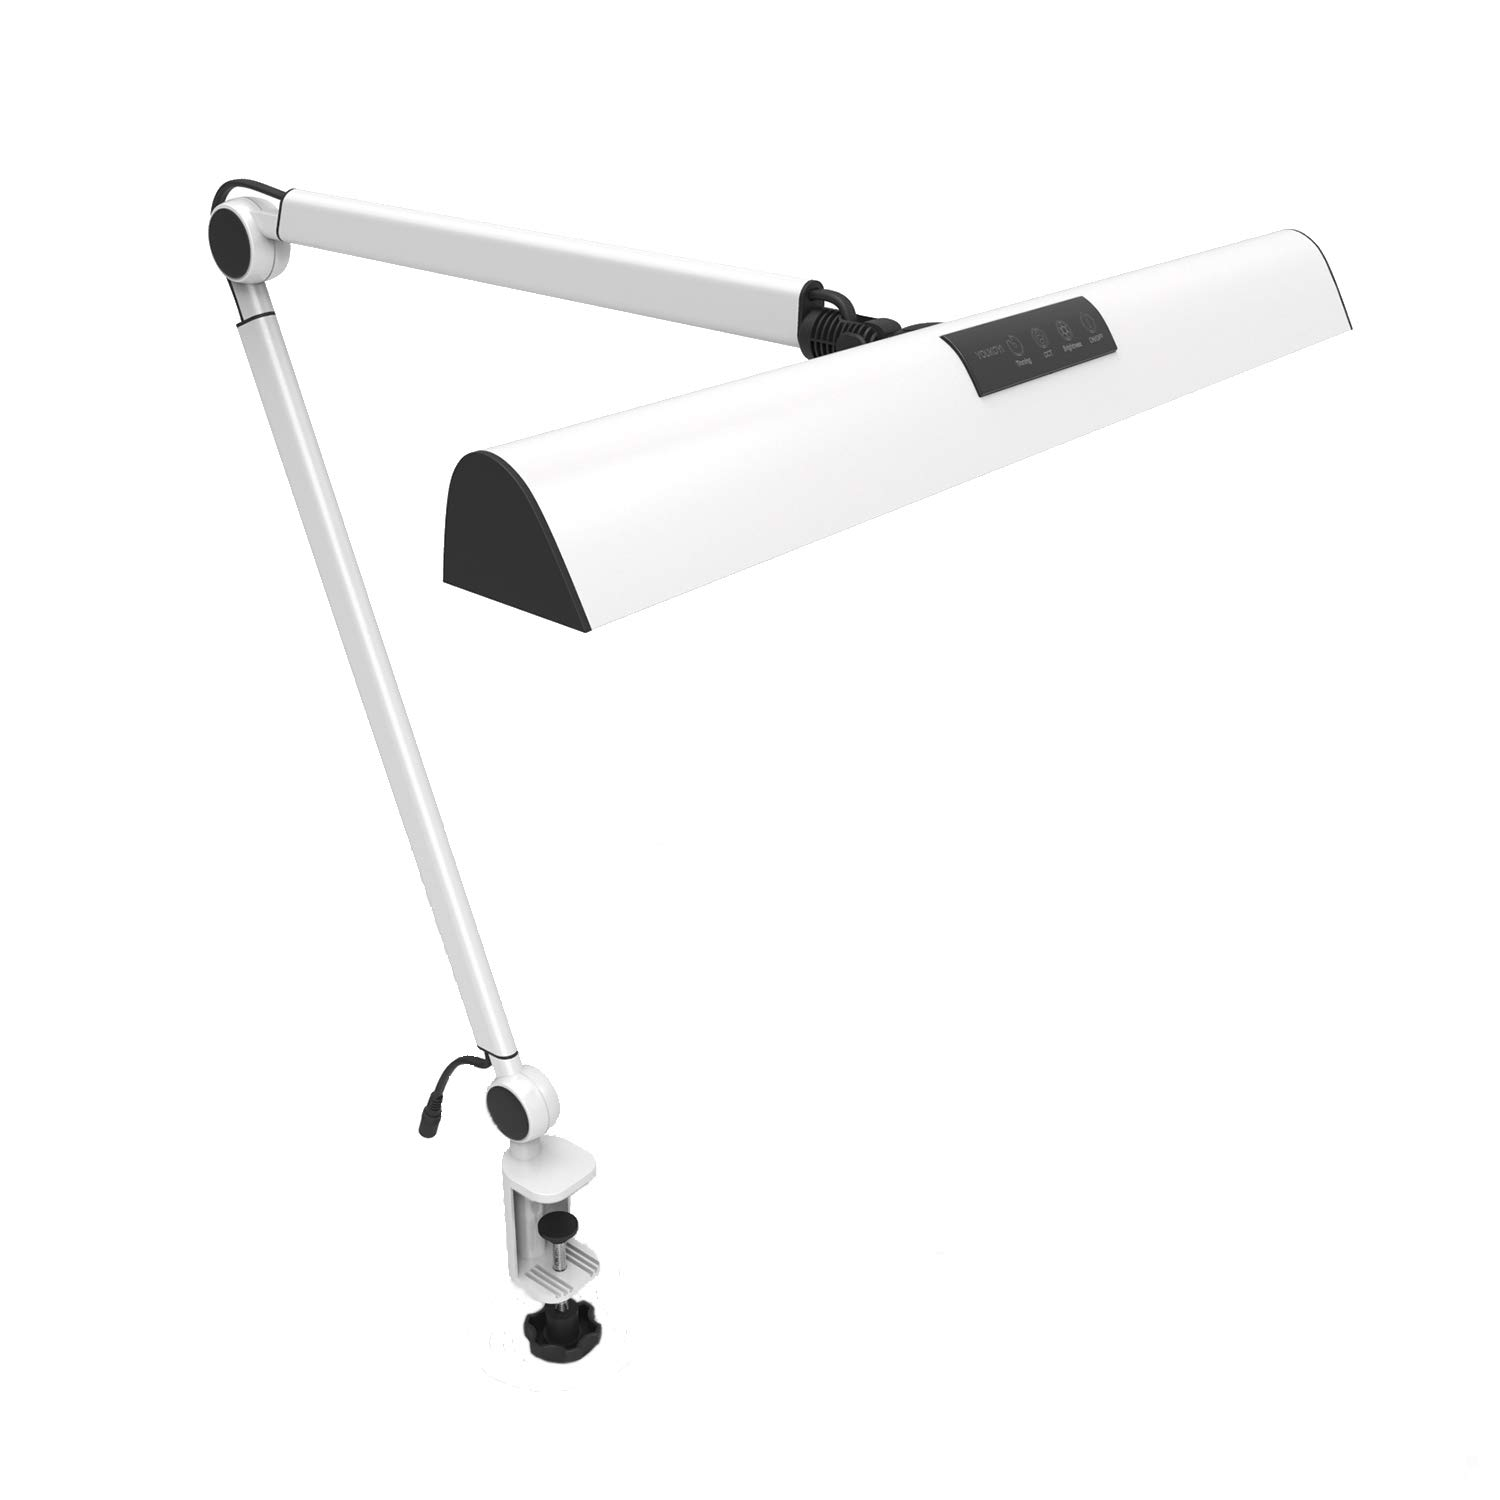 YOUKOYI A509 LED Swing Arm Architect Desk Lamp Clamp, Drafting Table Lamp for Reading/Working (2 Lighting Modes, 4-level Dimmable, Eye Caring)-Silver by YOUKOYI